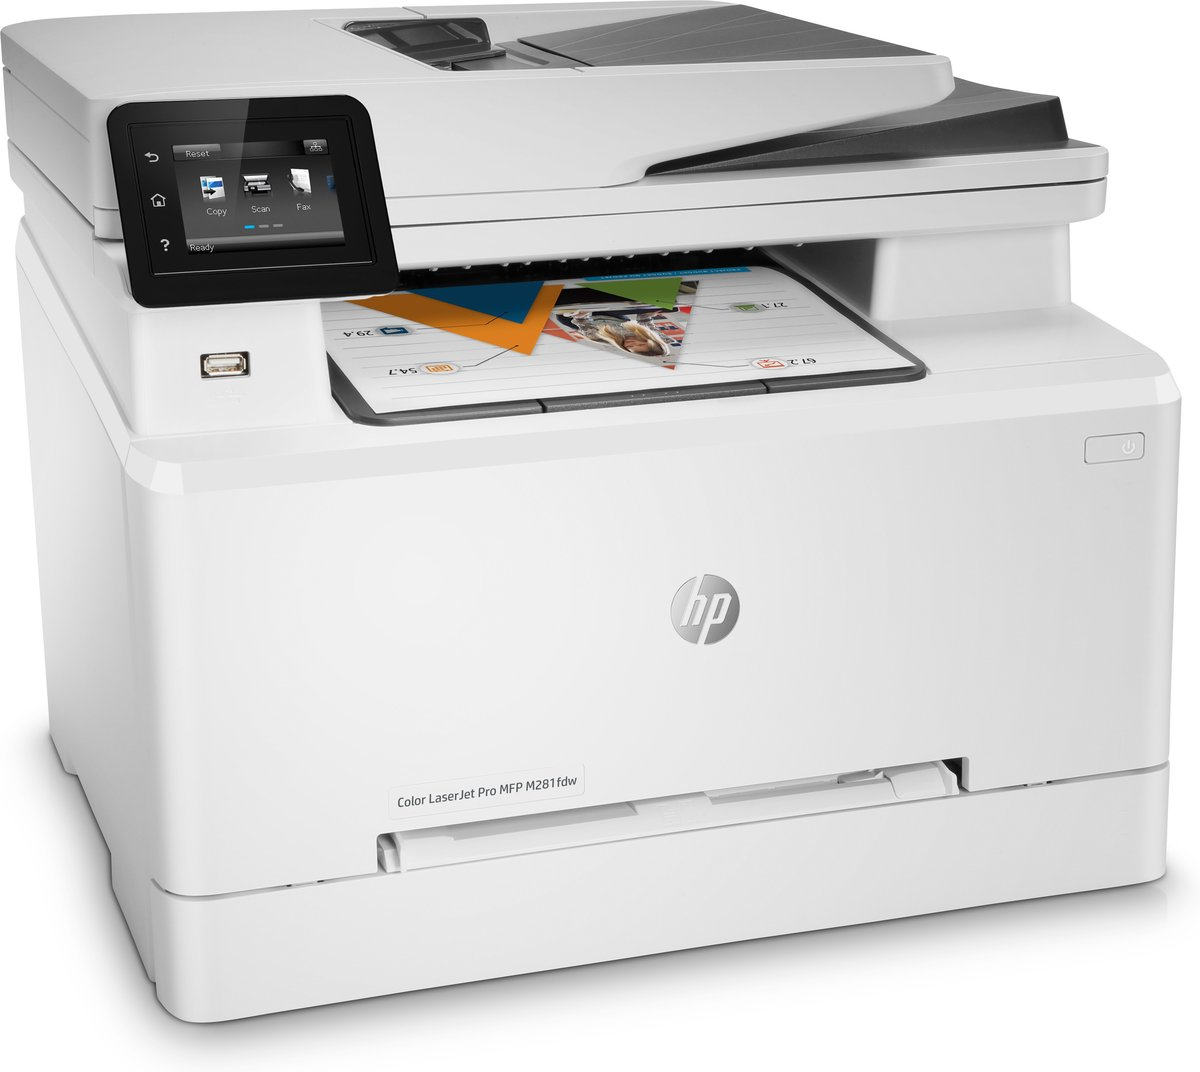 HP Color LaserJet Pro MFP M281fdw - Multifunction printer